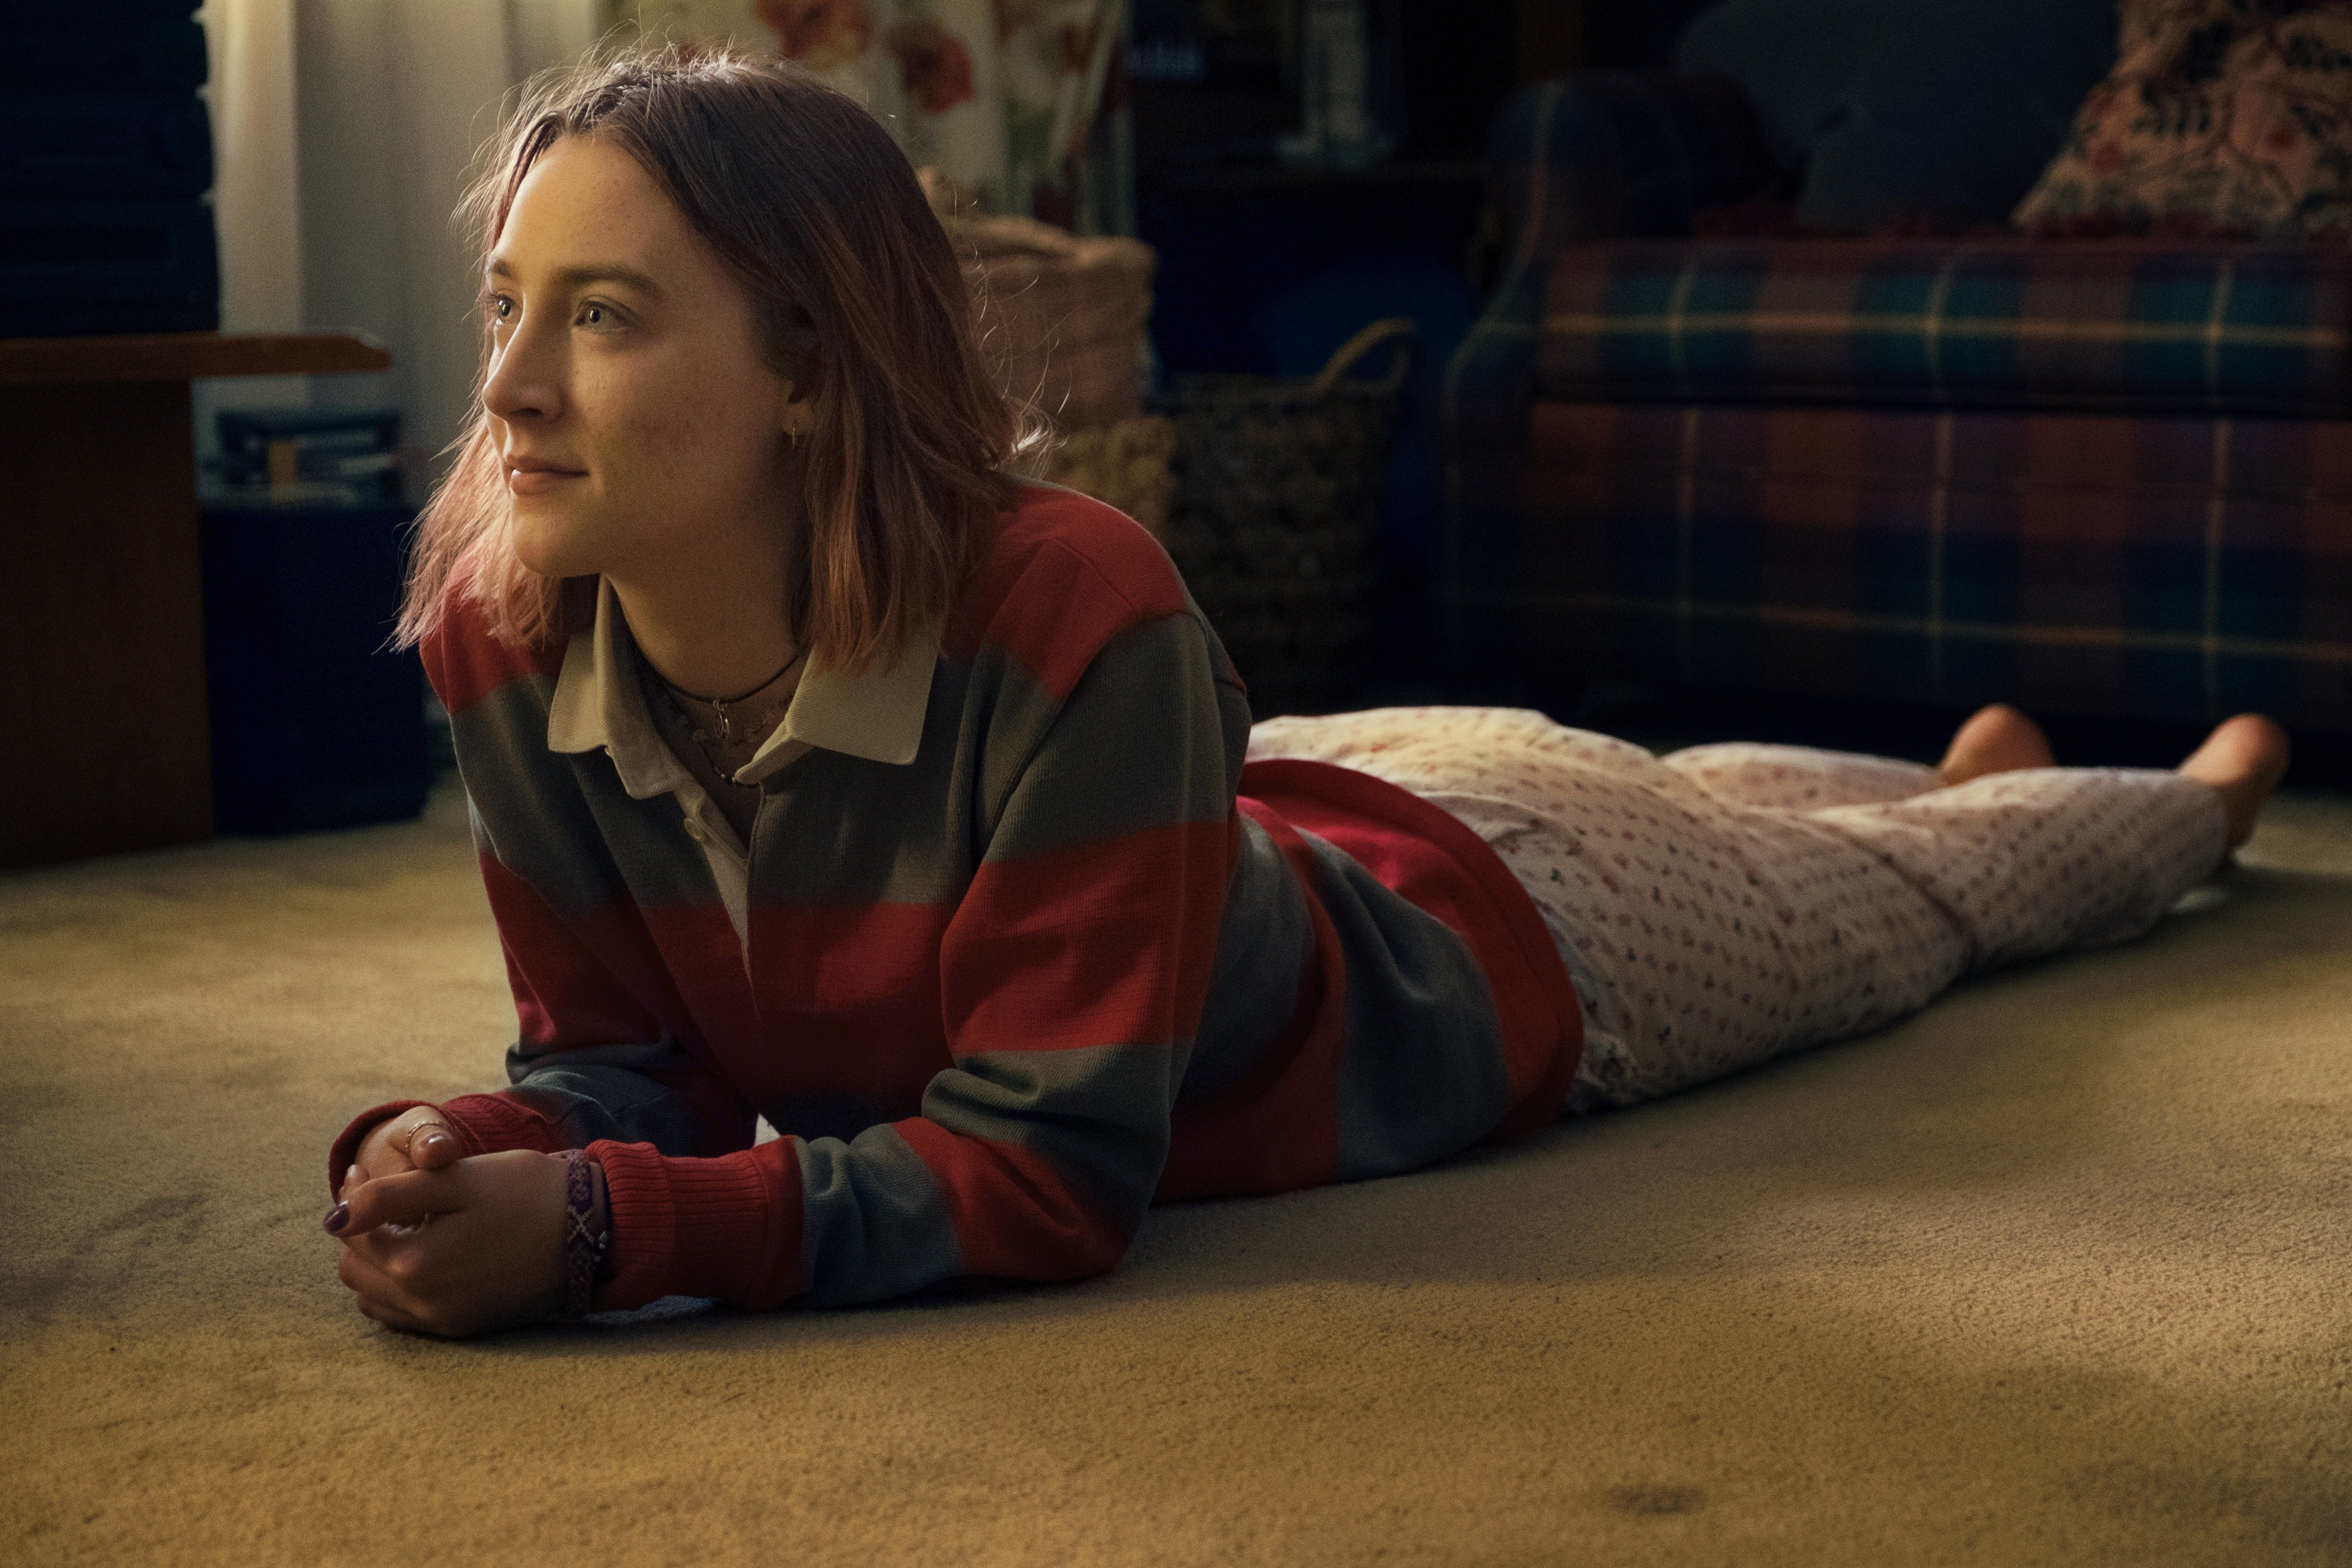 "A nice <a href=""https://www.huffingtonpost.com/entry/lady-bird-review-greta-gerwig_us_59f4cdc4e4b077d8dfc9fe54?0ci"" target=""_"